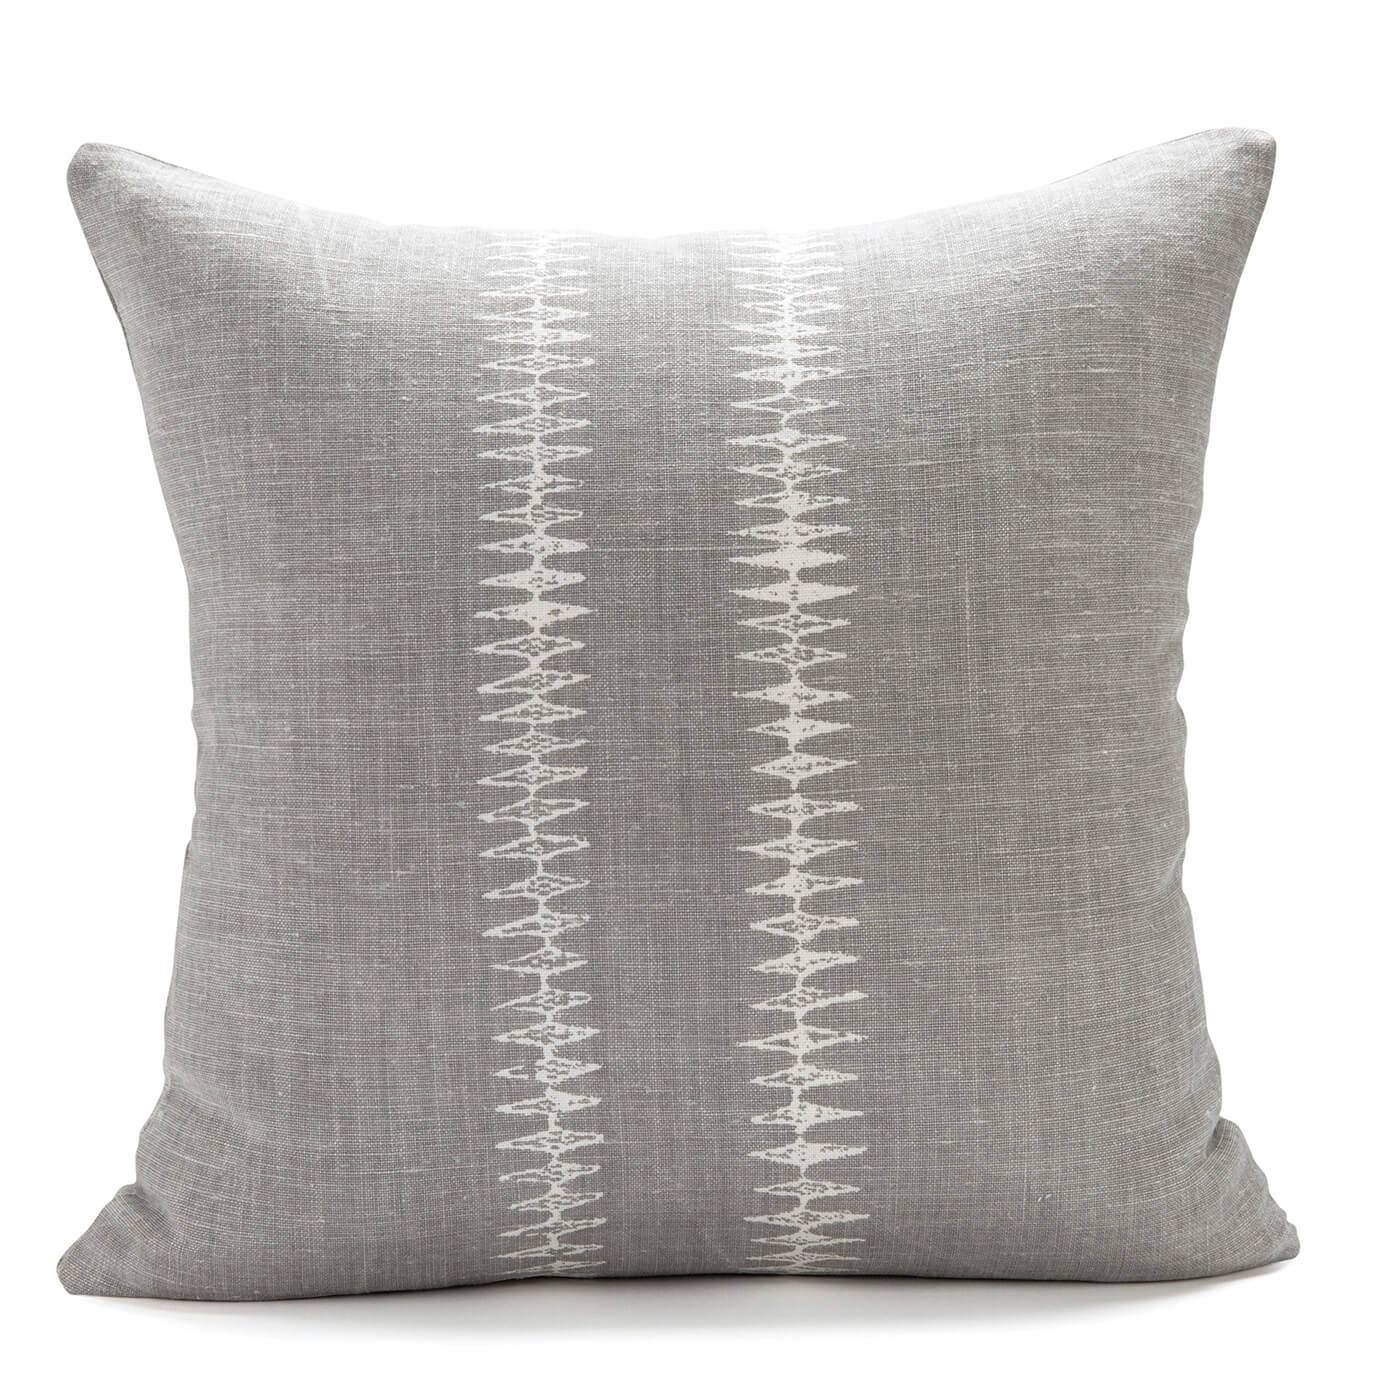 Sound Dark Gray Pillow